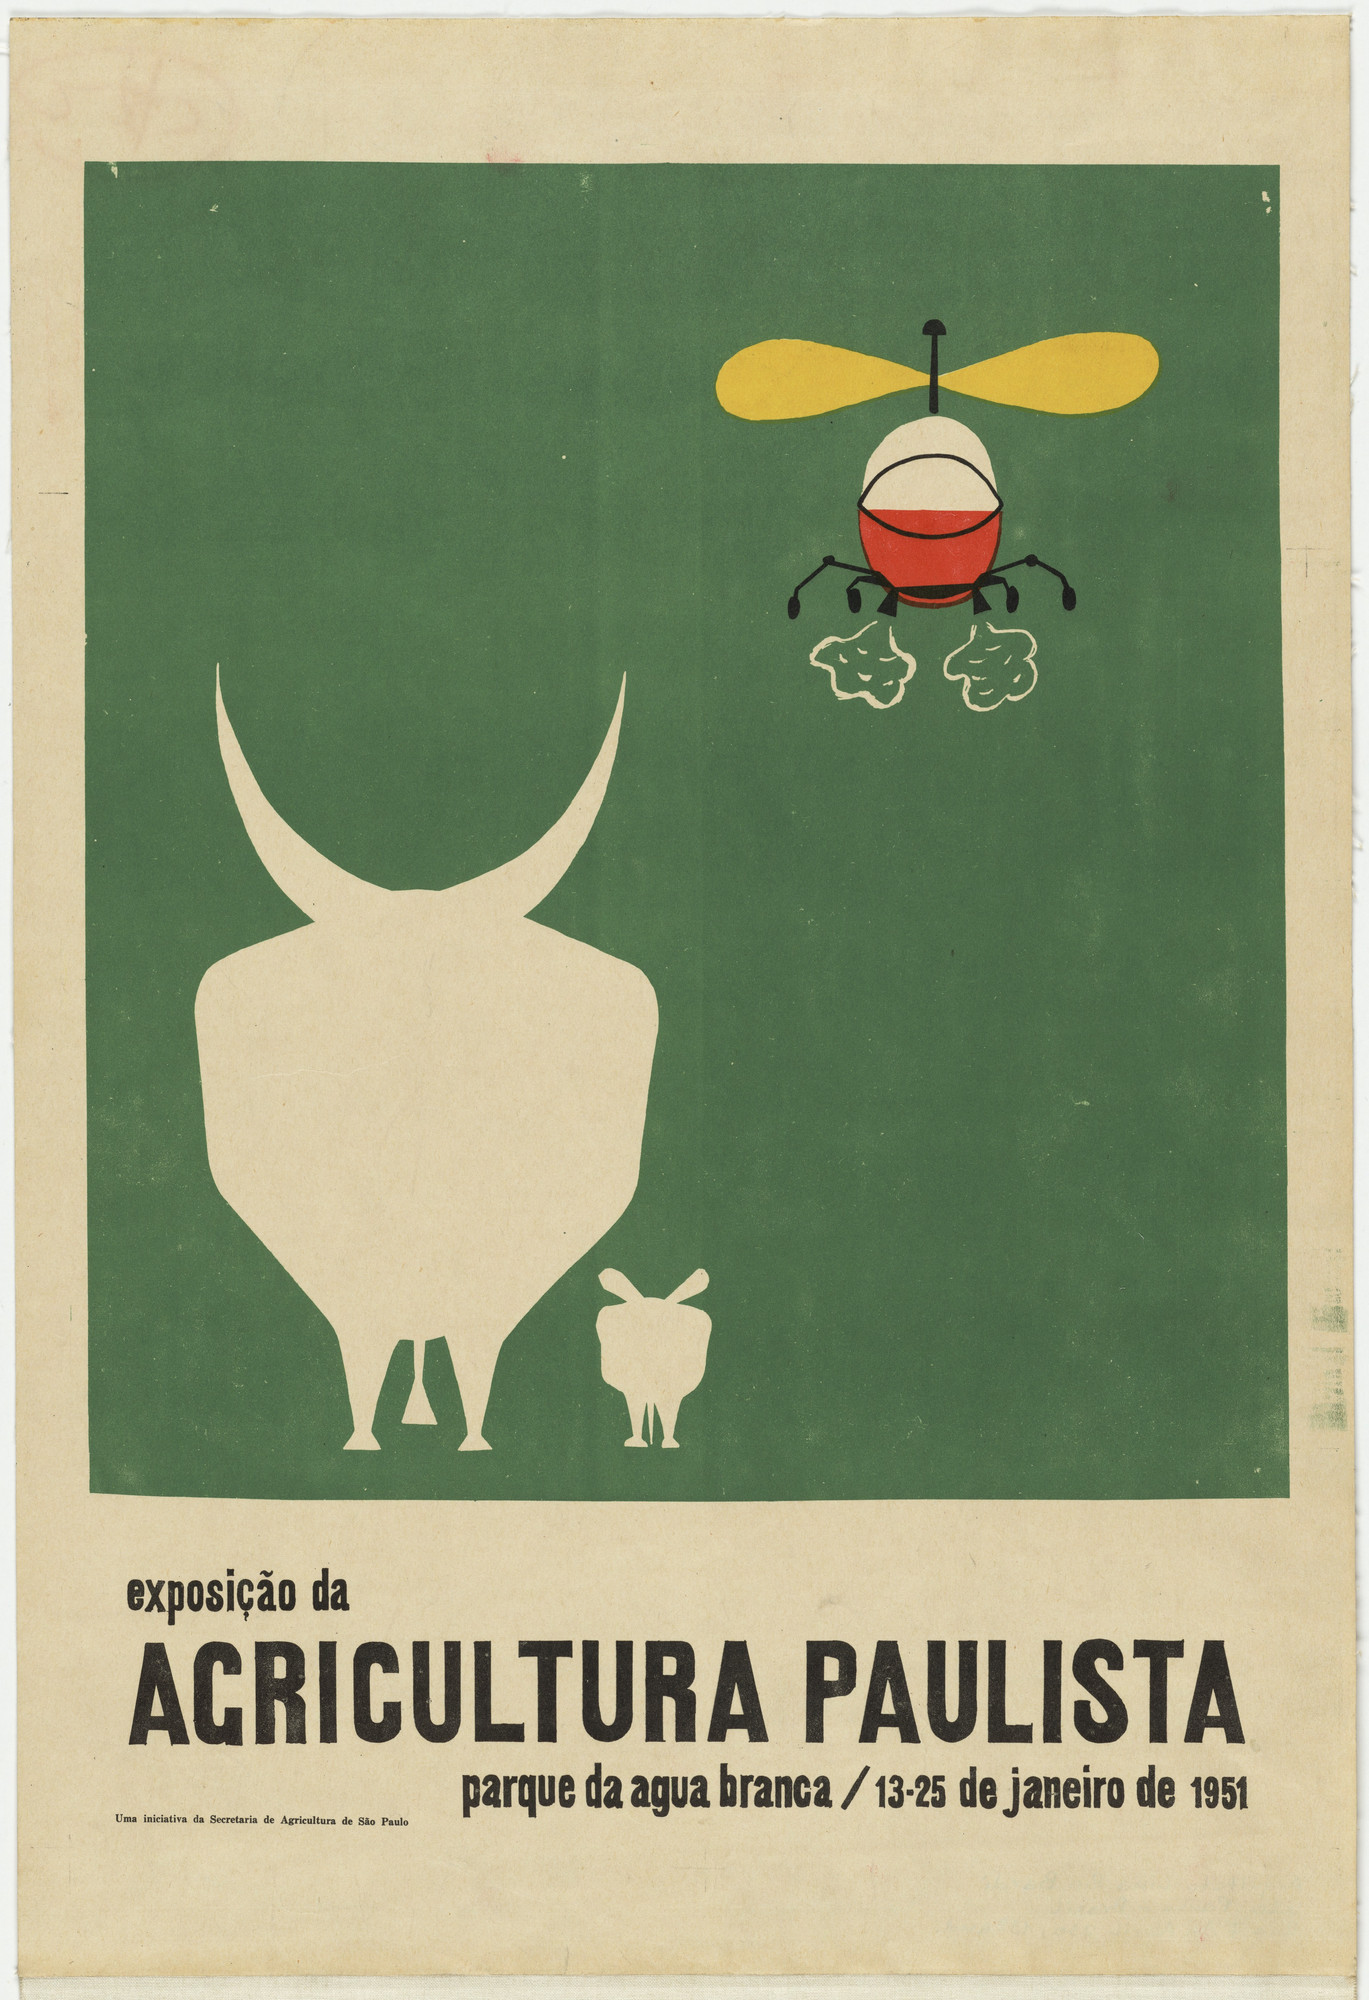 Lina Bo Bardi. Exposição da Agricultura Paulista (Poster for exhibition on agriculture in the state of São Paulo). 1951